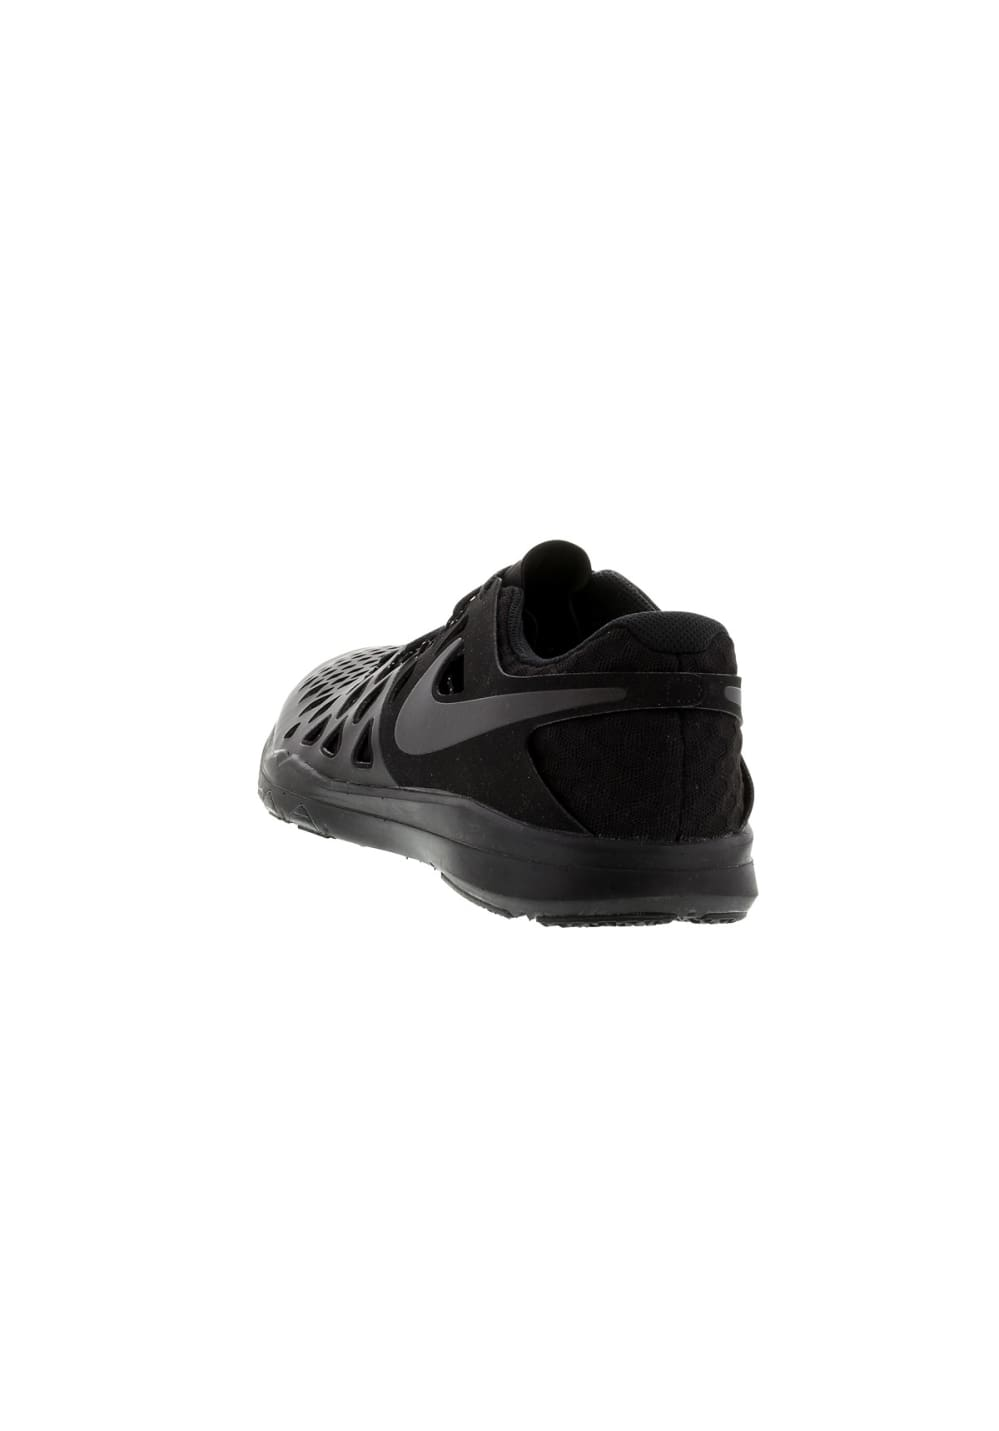 56d58b009e493 Next. Nike. Zoom Train Speed 4 - Fitness shoes for Men. €109.95. incl. VAT,  plus shipping costs